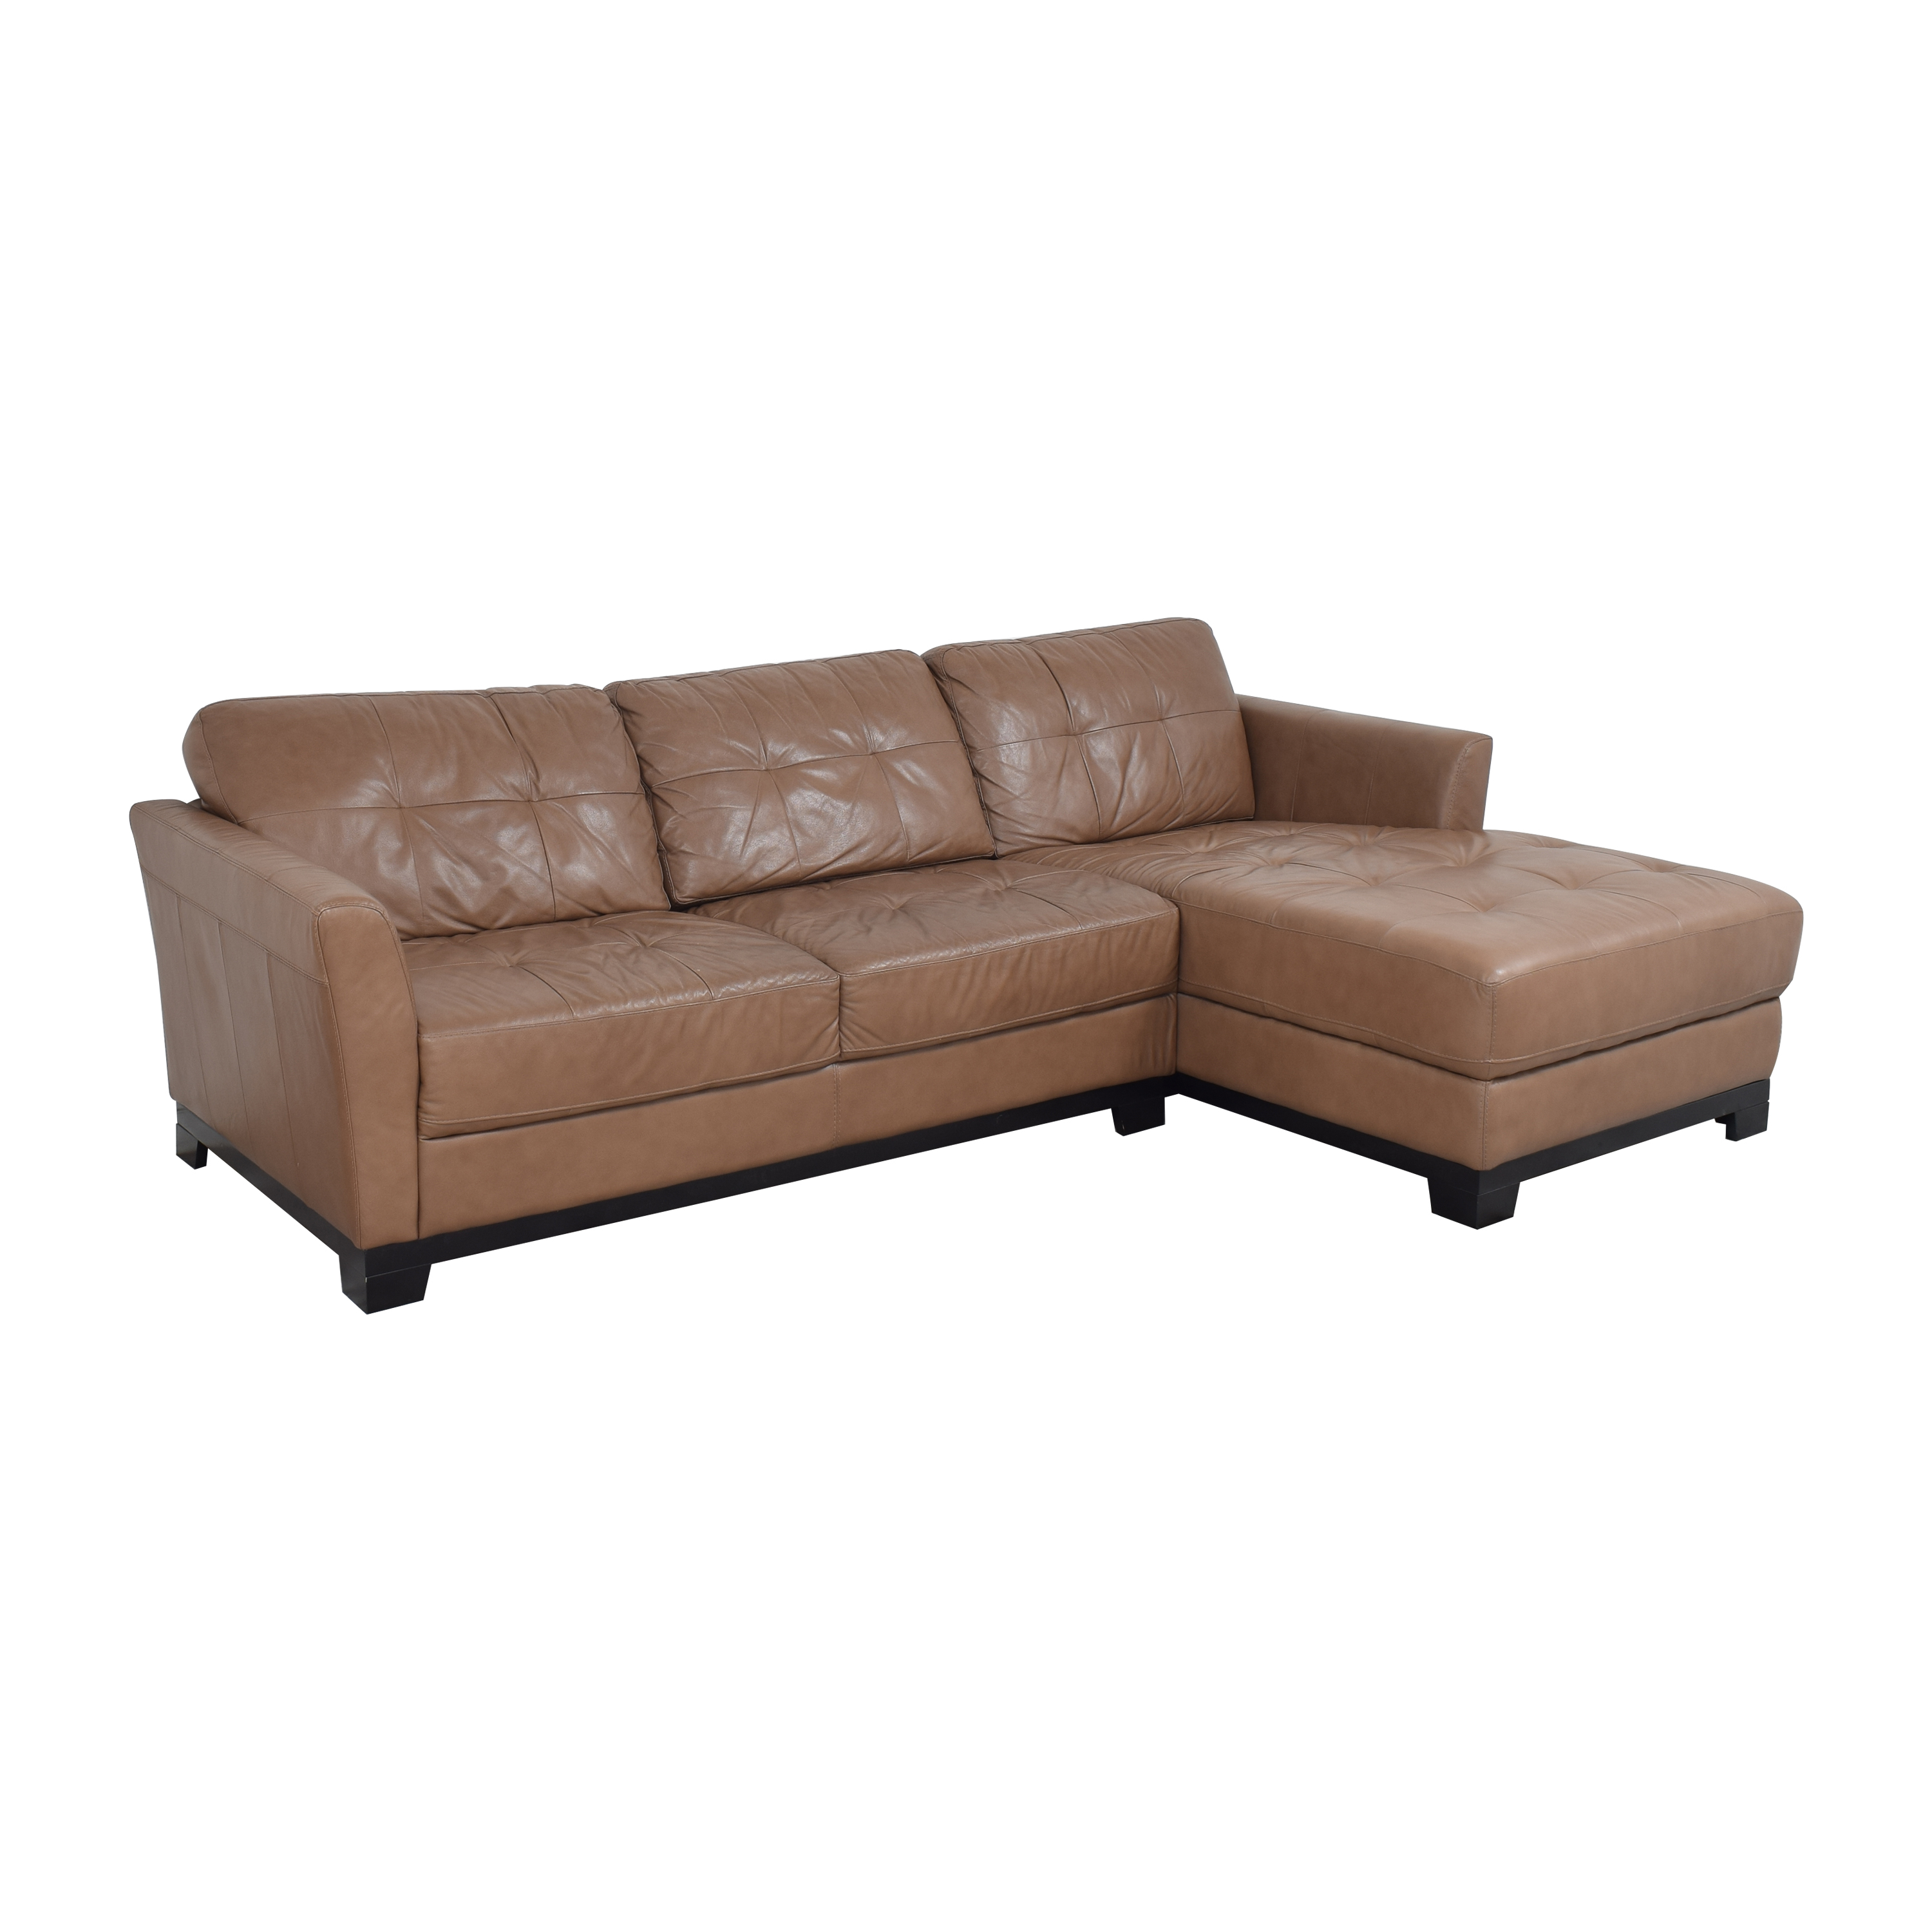 Chateau d'Ax Chateau d'Ax Chaise Sectional Sofa price